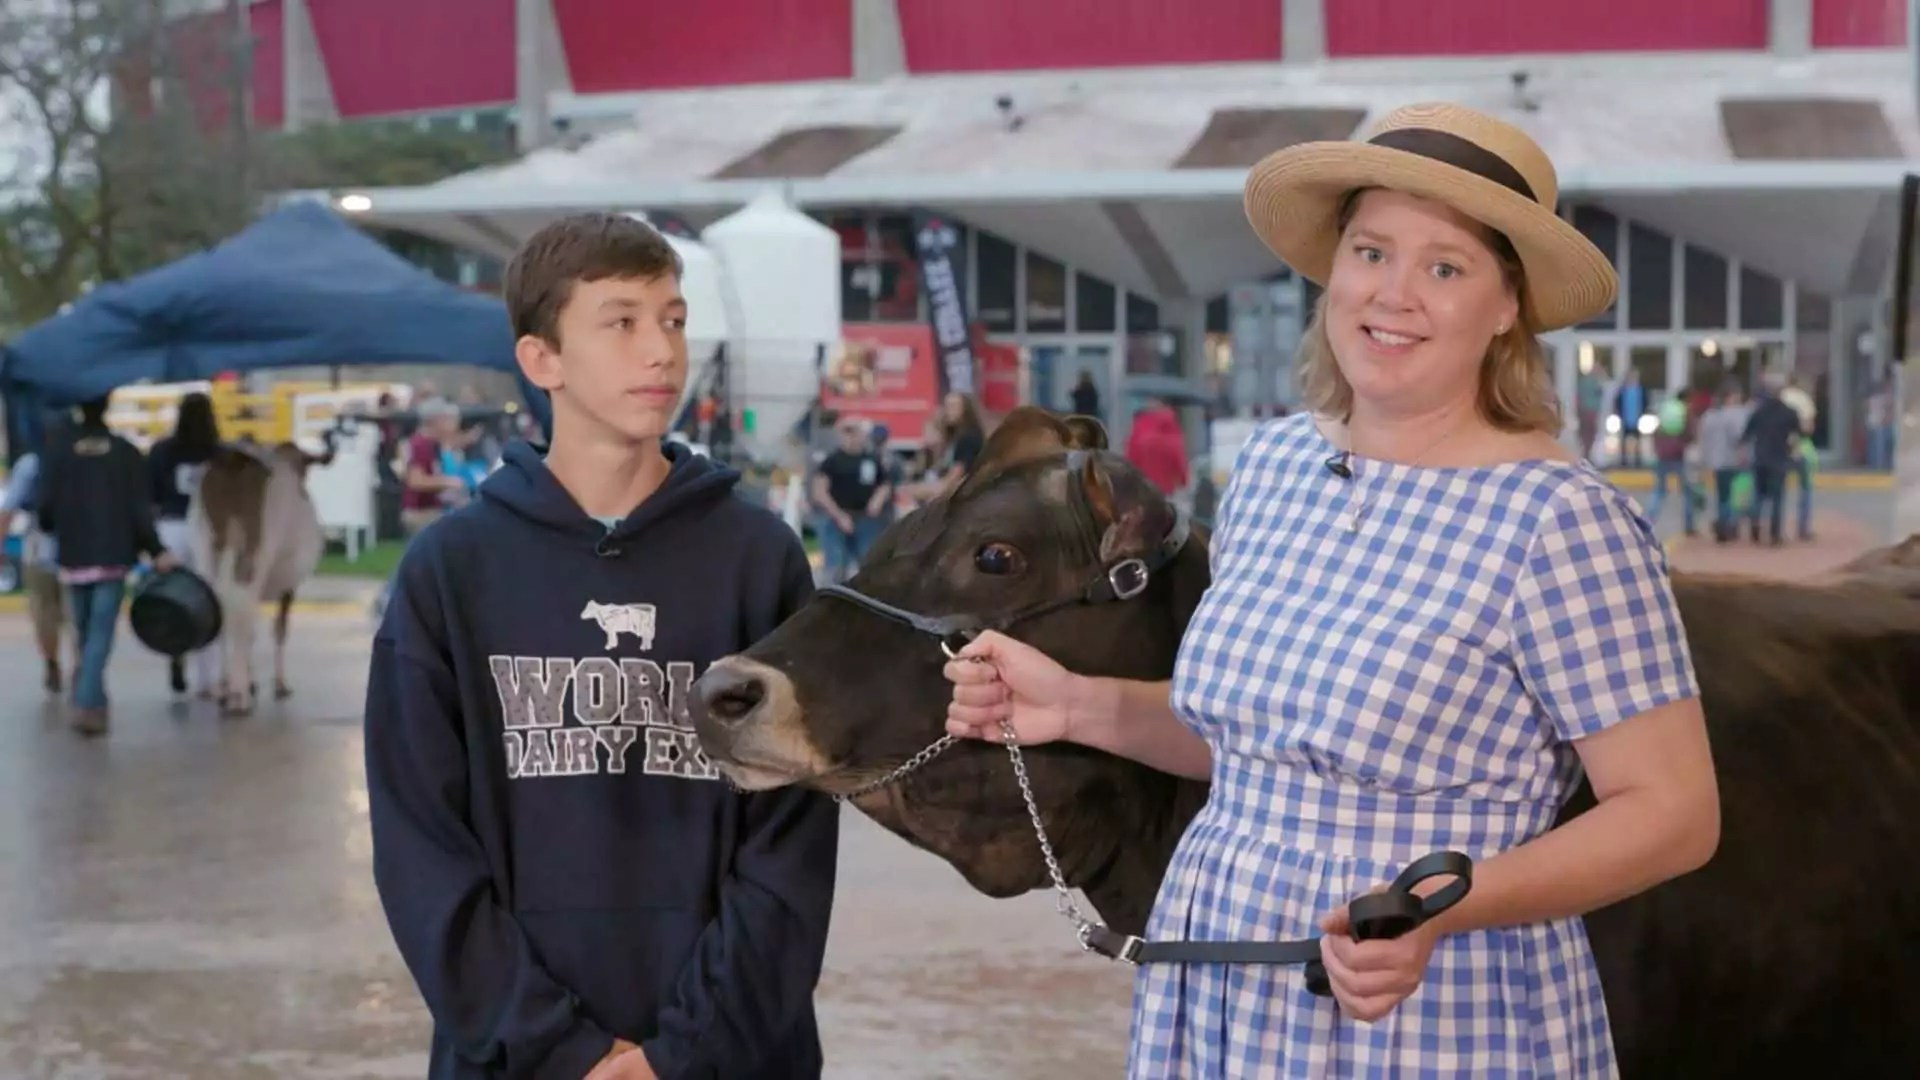 A person holds handles for a cow while a teenager looks at them.